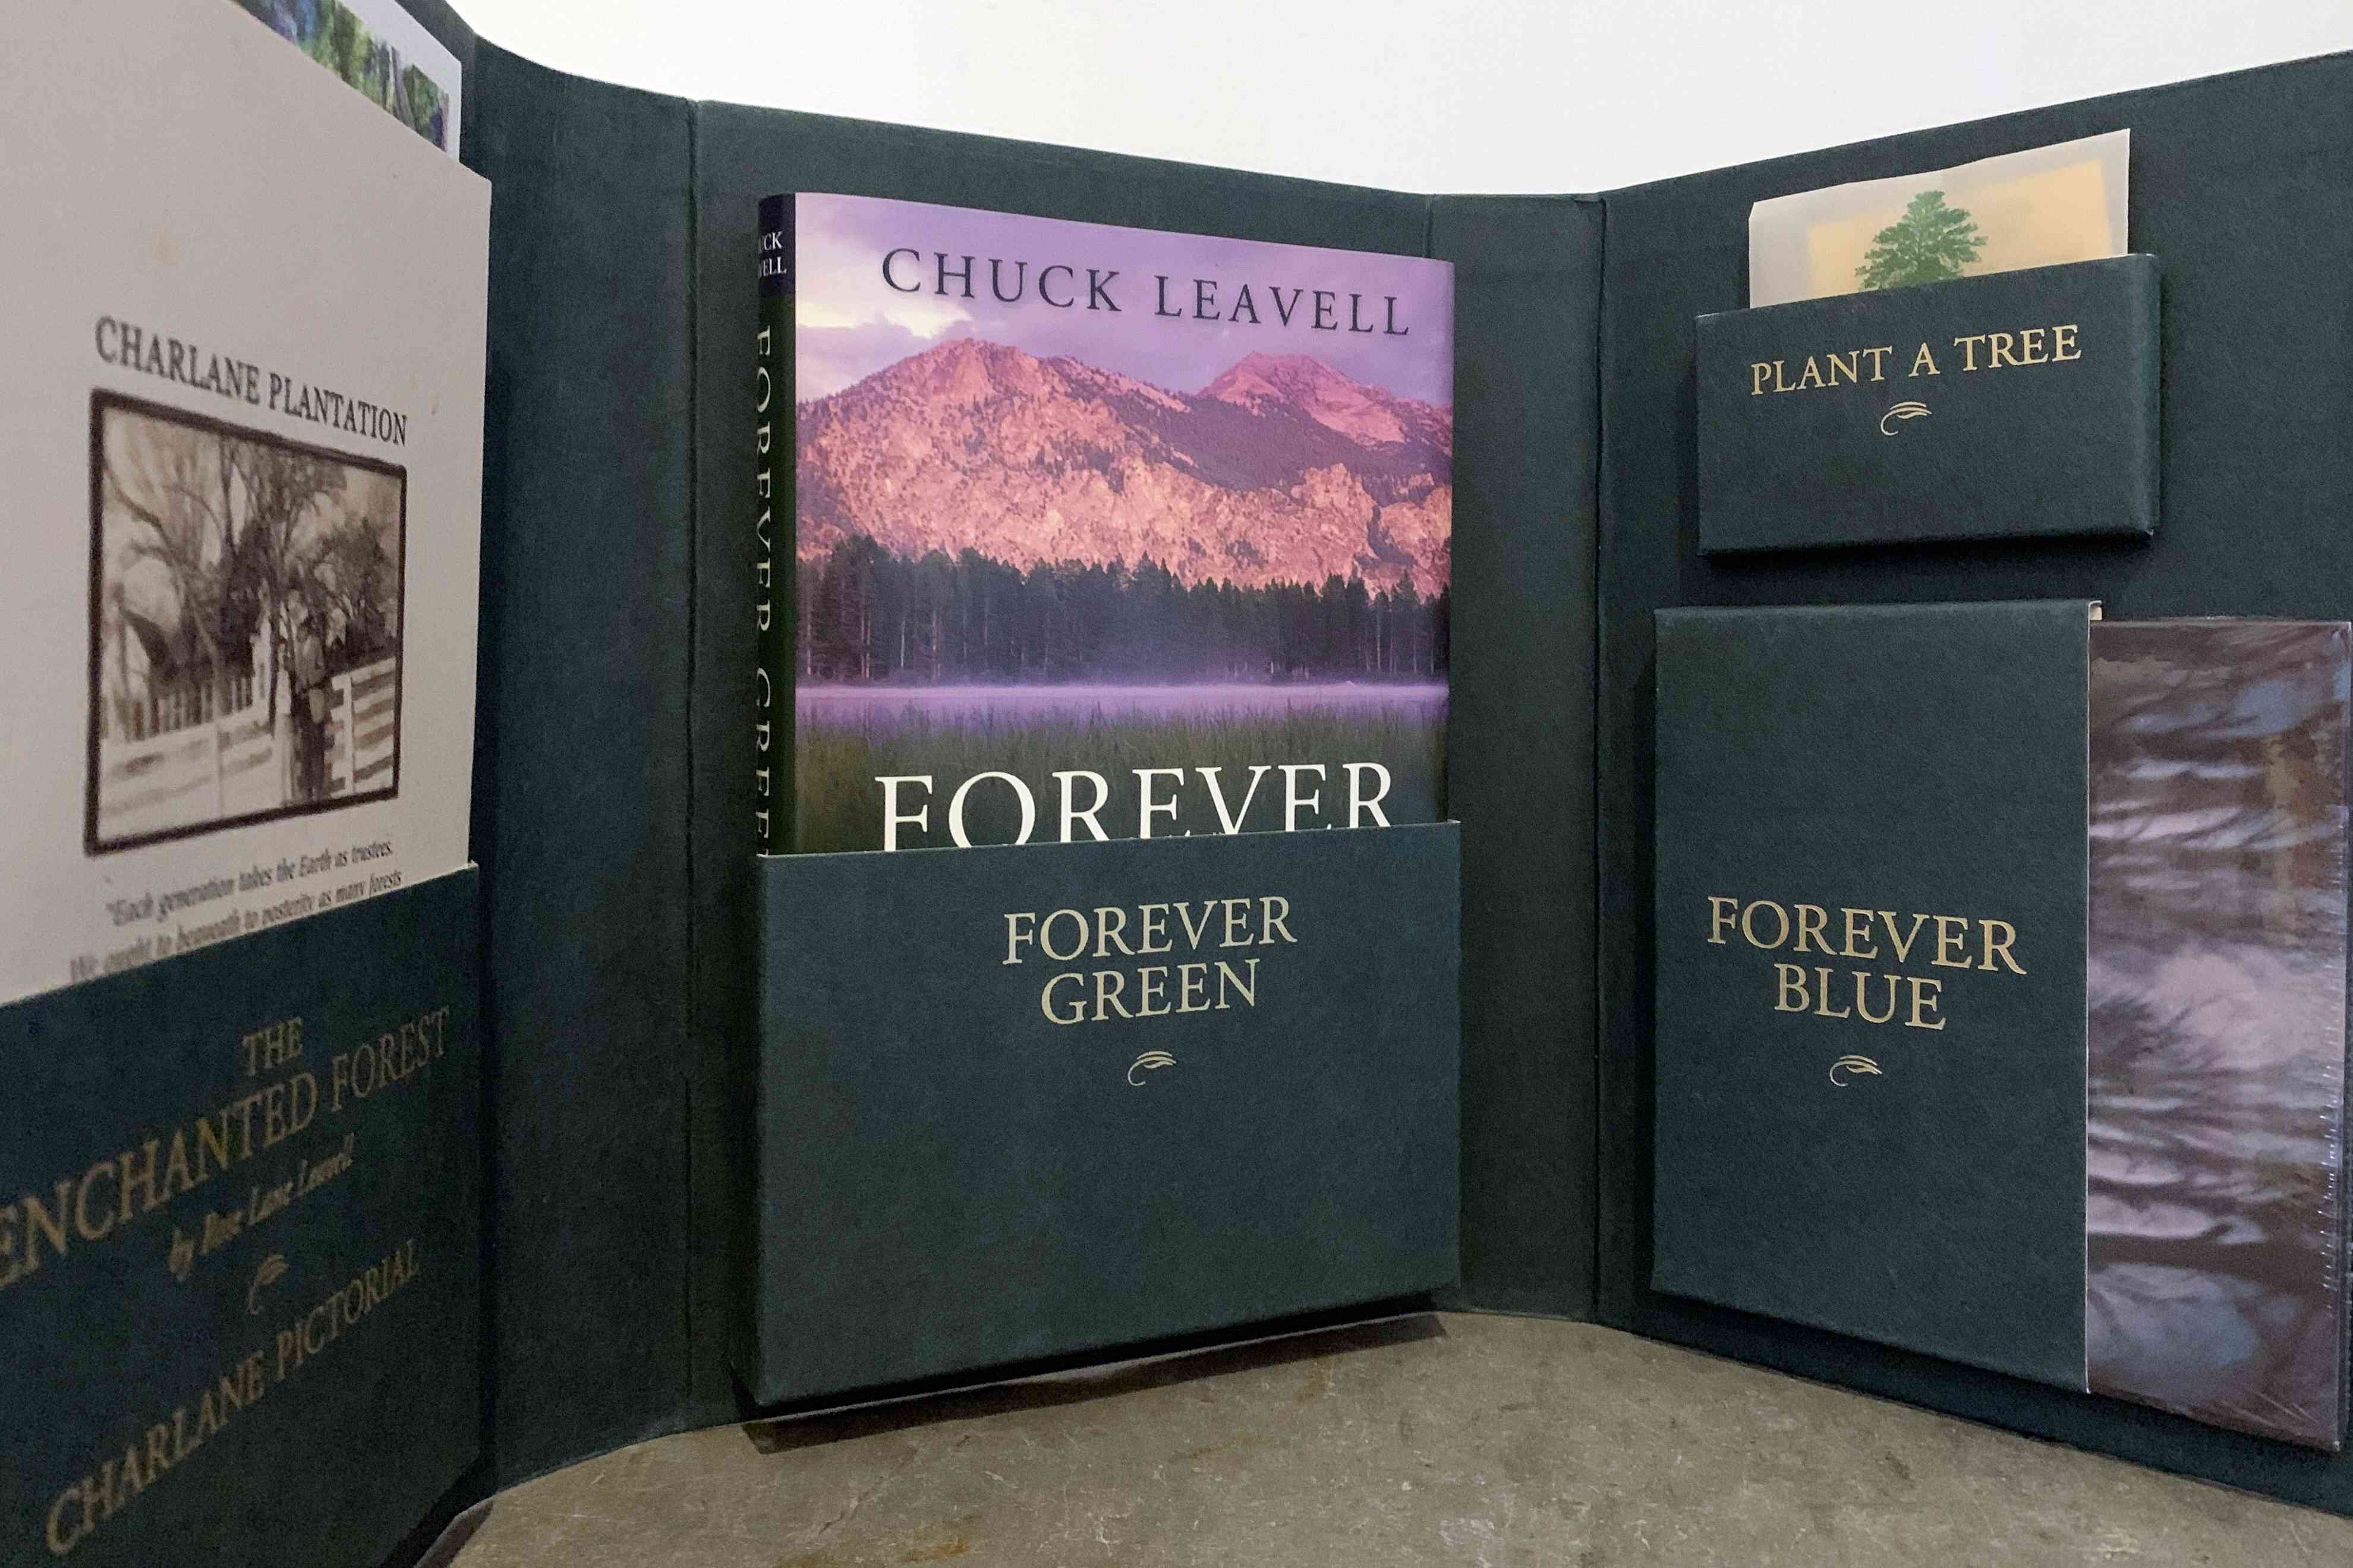 Box set of check leavell book